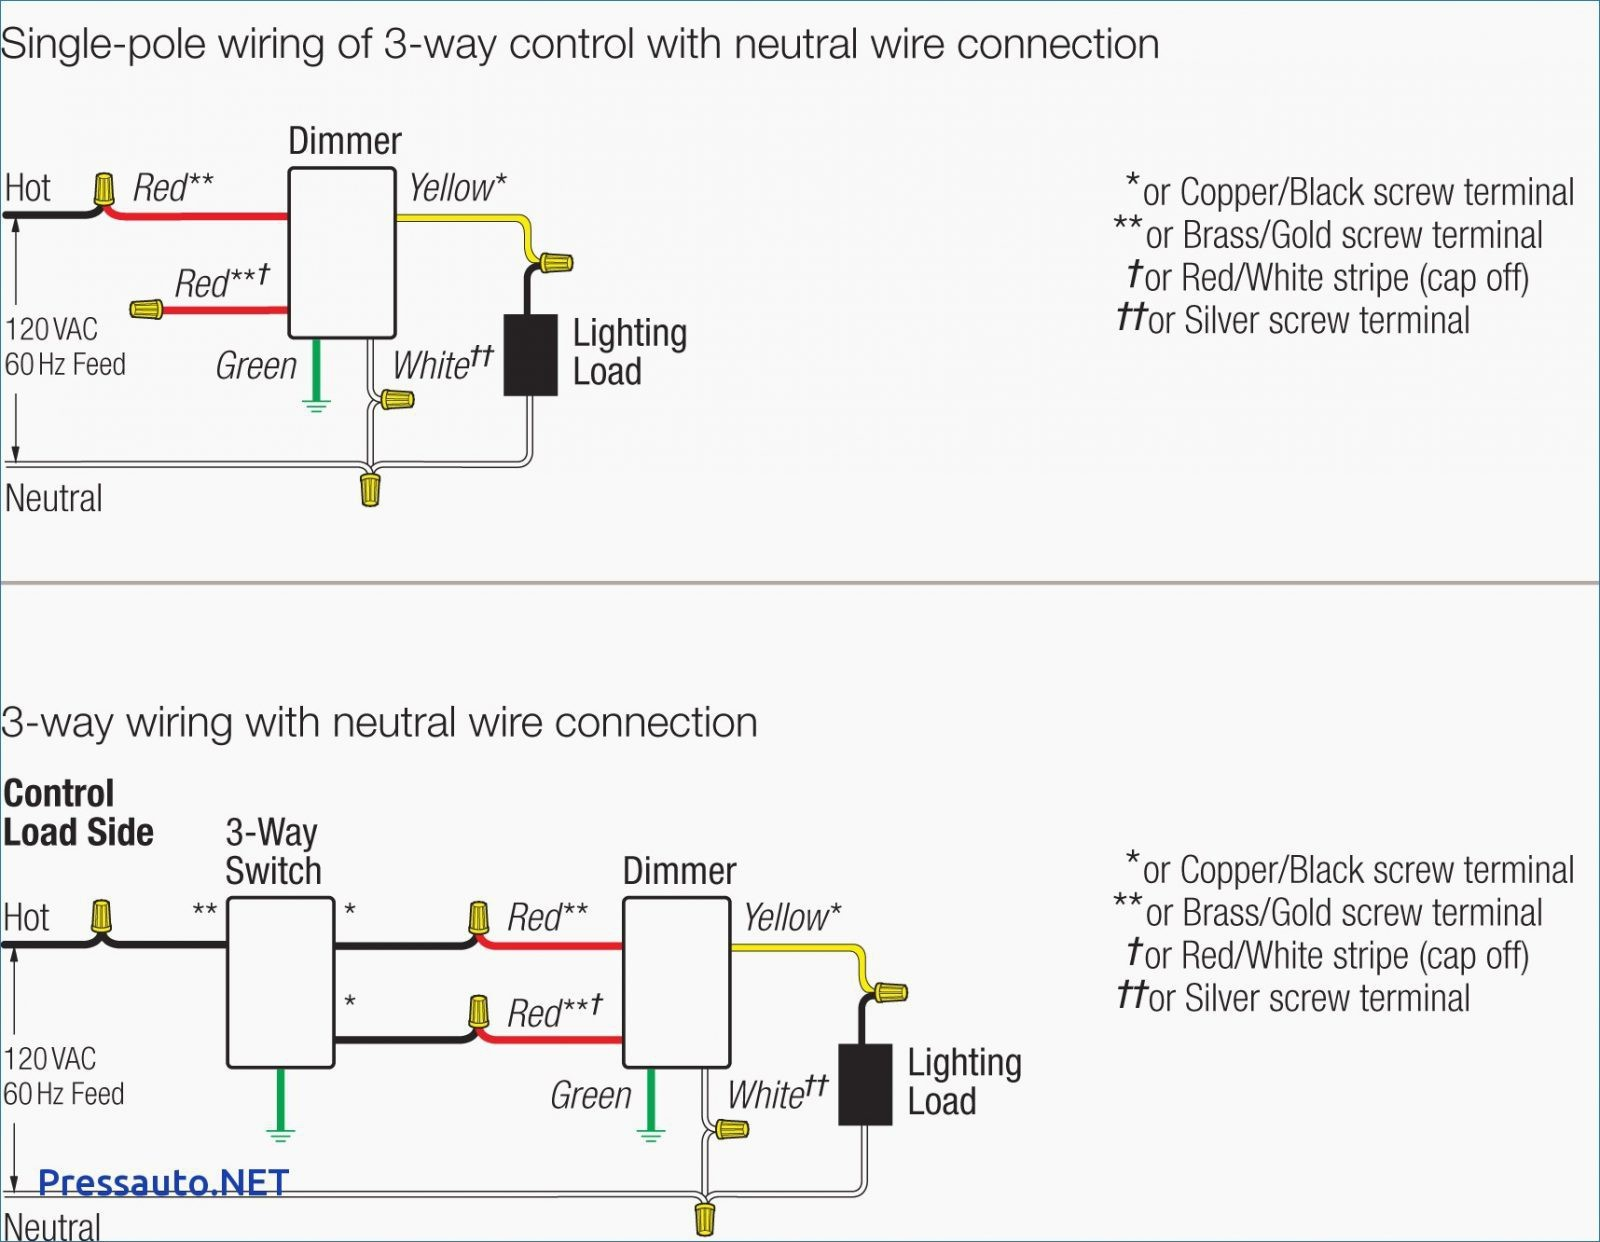 Sylvania Quicktronic Ballast Bypass Wiring Diagram WIRE Center - Ballast bypass wiring diagram